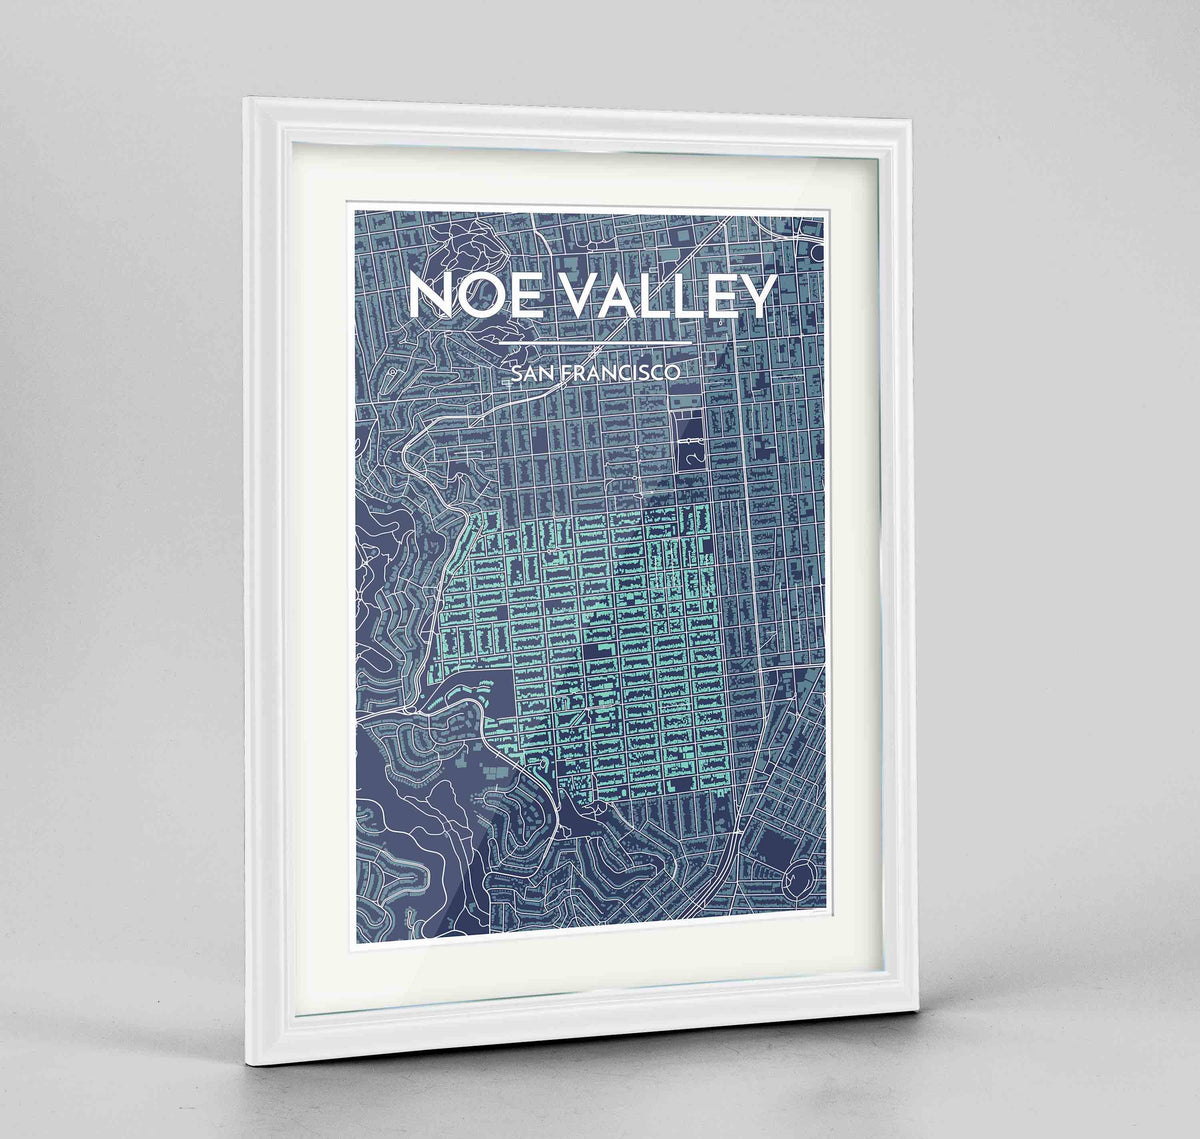 "Framed Noe Valley, San Francisco Map Art 24x36"" Traditional White frame Point Two Design Group"